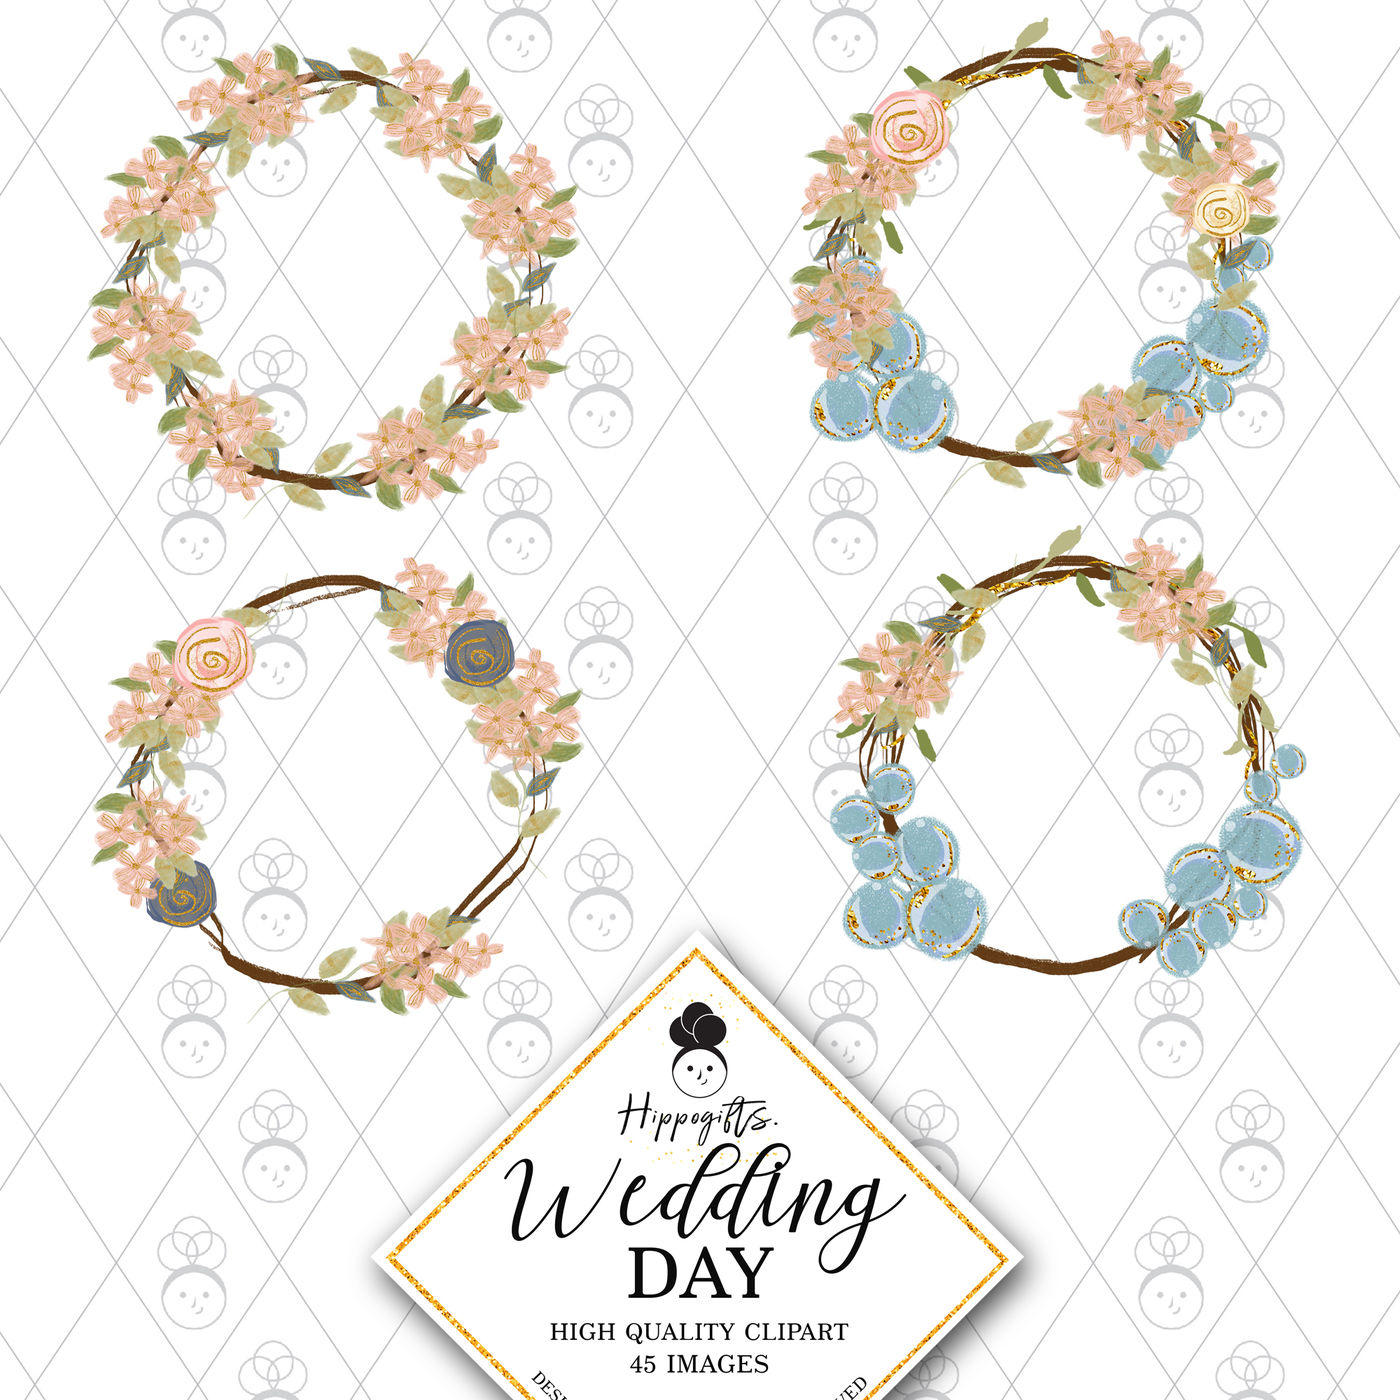 hight resolution of  wedding clipart bridal clipart